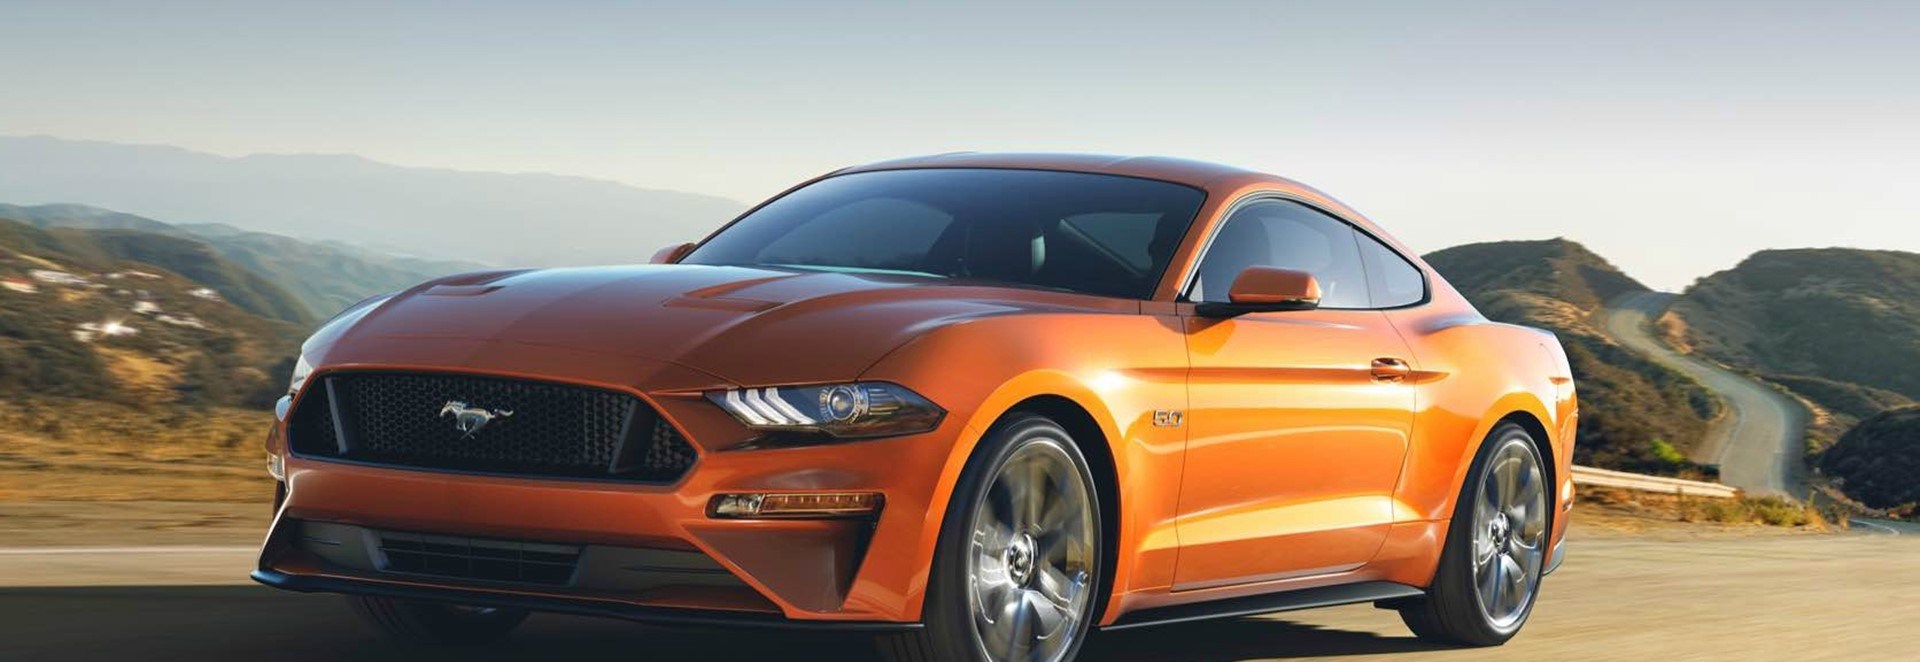 2018 Ford Mustang will come with a Stealth Mode - Car Keys